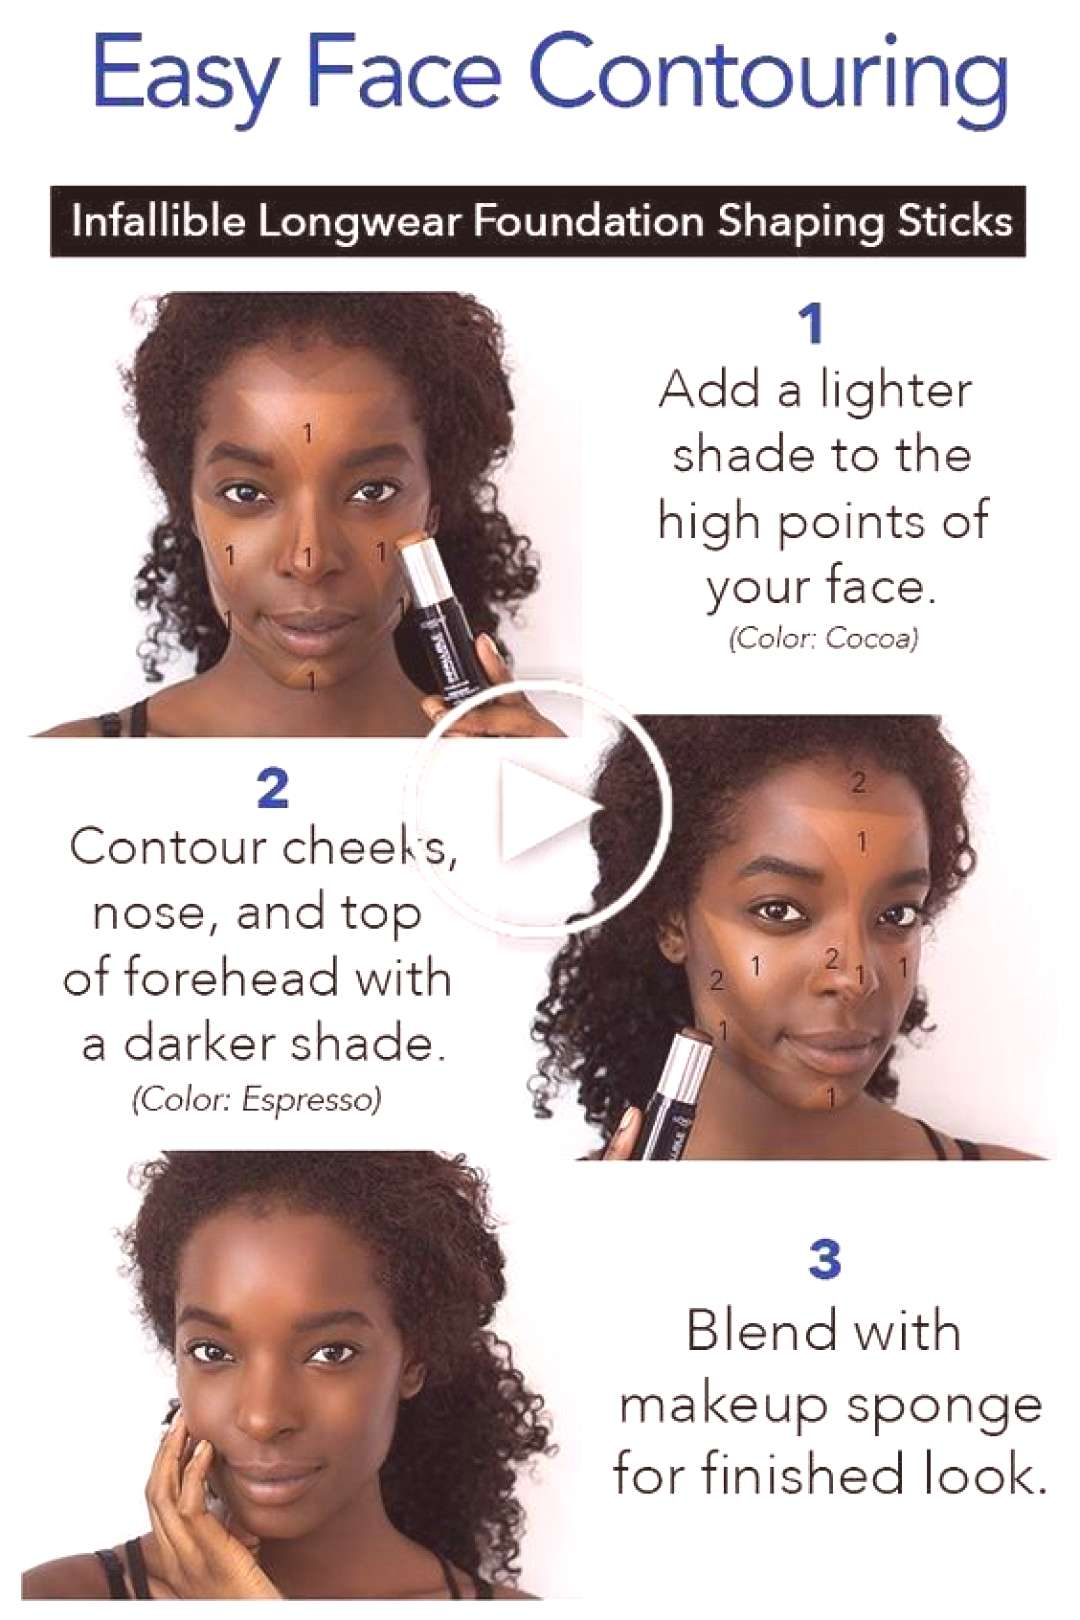 Girl tips and advice for easy contouring makeup - ABELLA PİNSHOUSE - maaghie Girl tips and advice